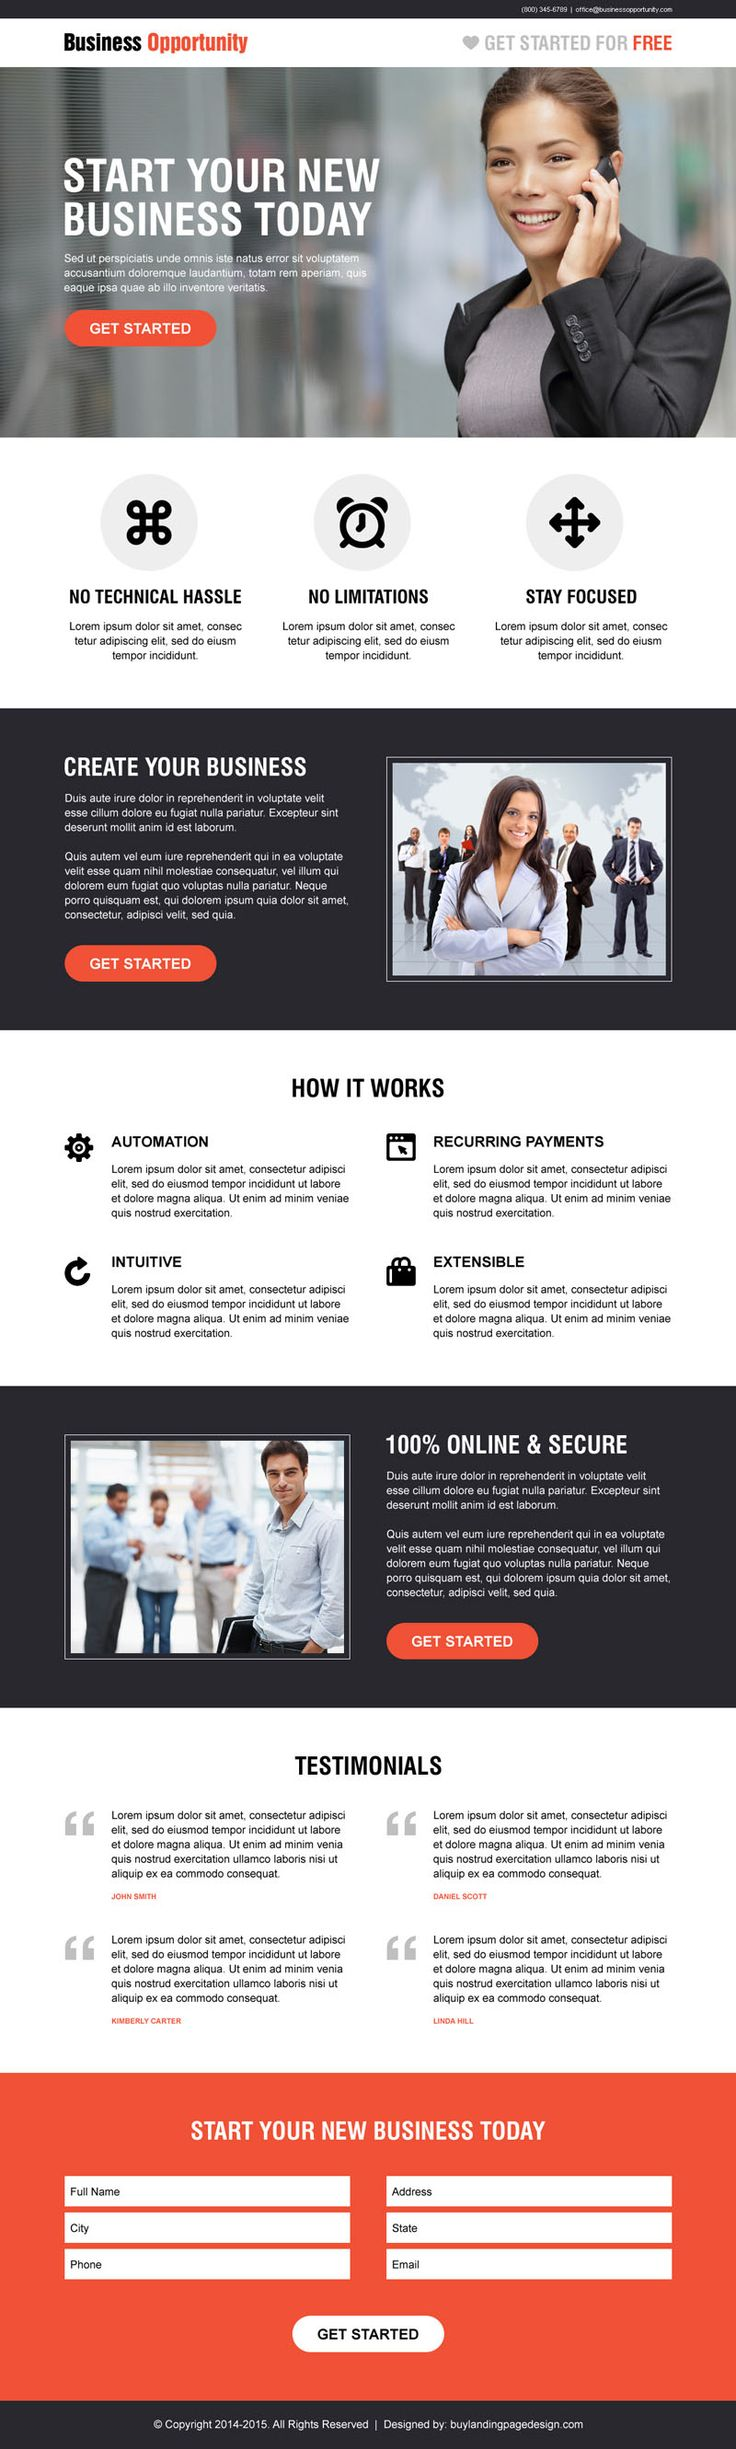 Purchase start your new business today call to action converting landing page design to convert your business into next label from https://www.buylandingpagedesign.com/buy/start-your-new-business-today-call-to-action-converting-landing-page-design/1399